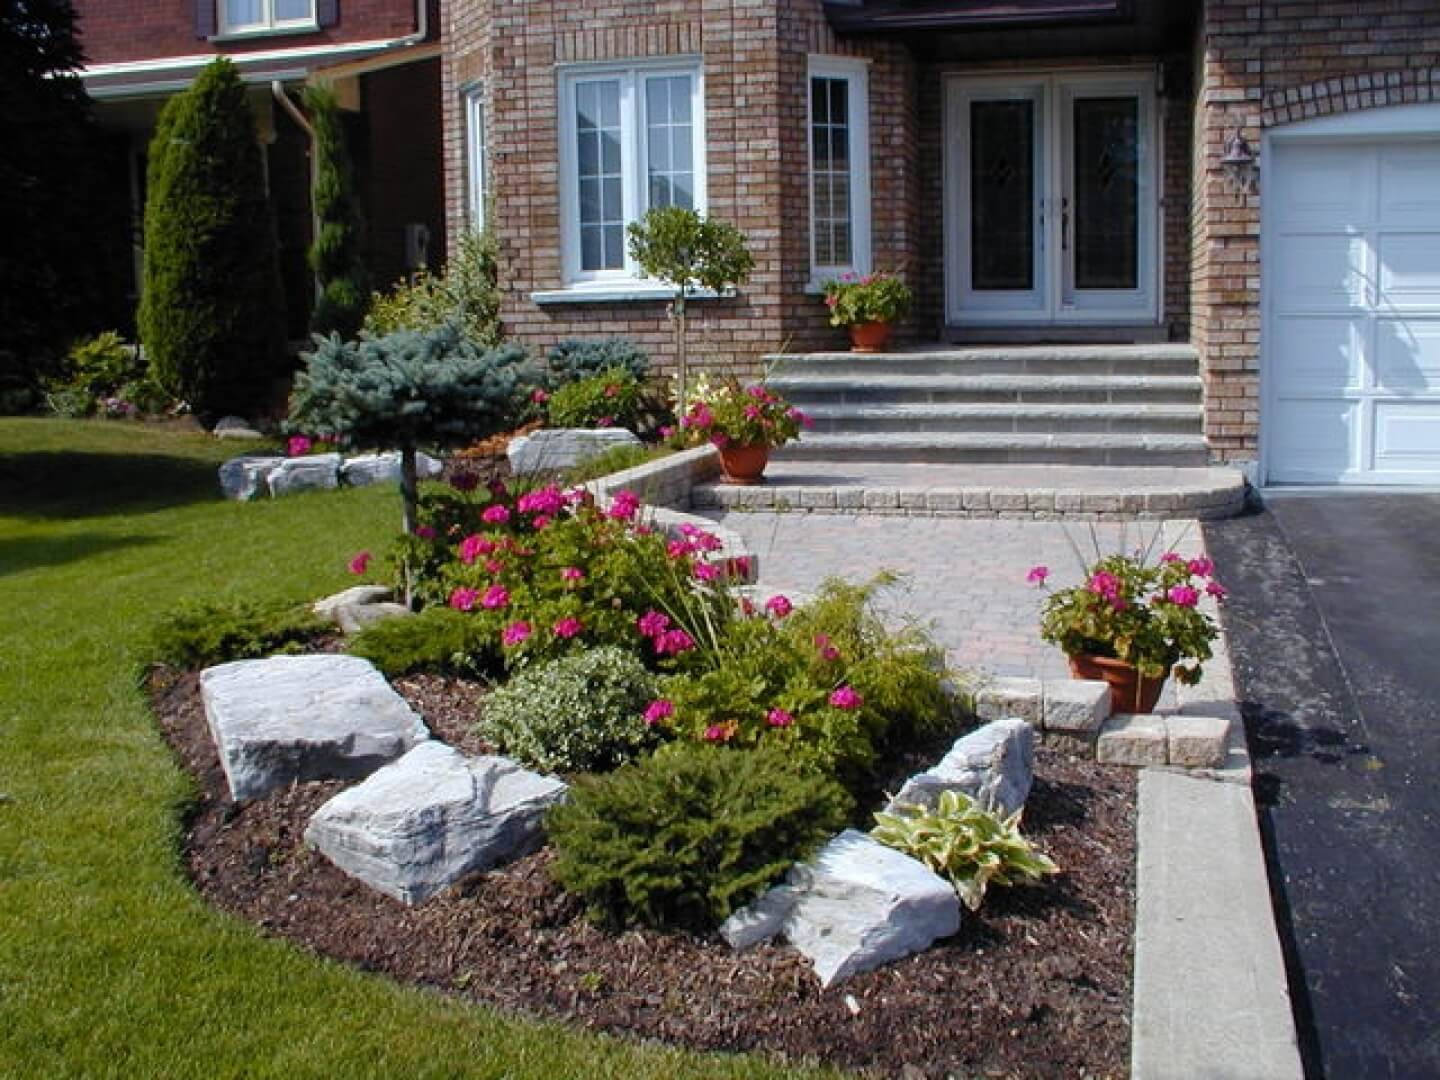 50 Best Front Garden Design Ideas in UK - Home Decor Ideas on Home Backyard Ideas id=92471